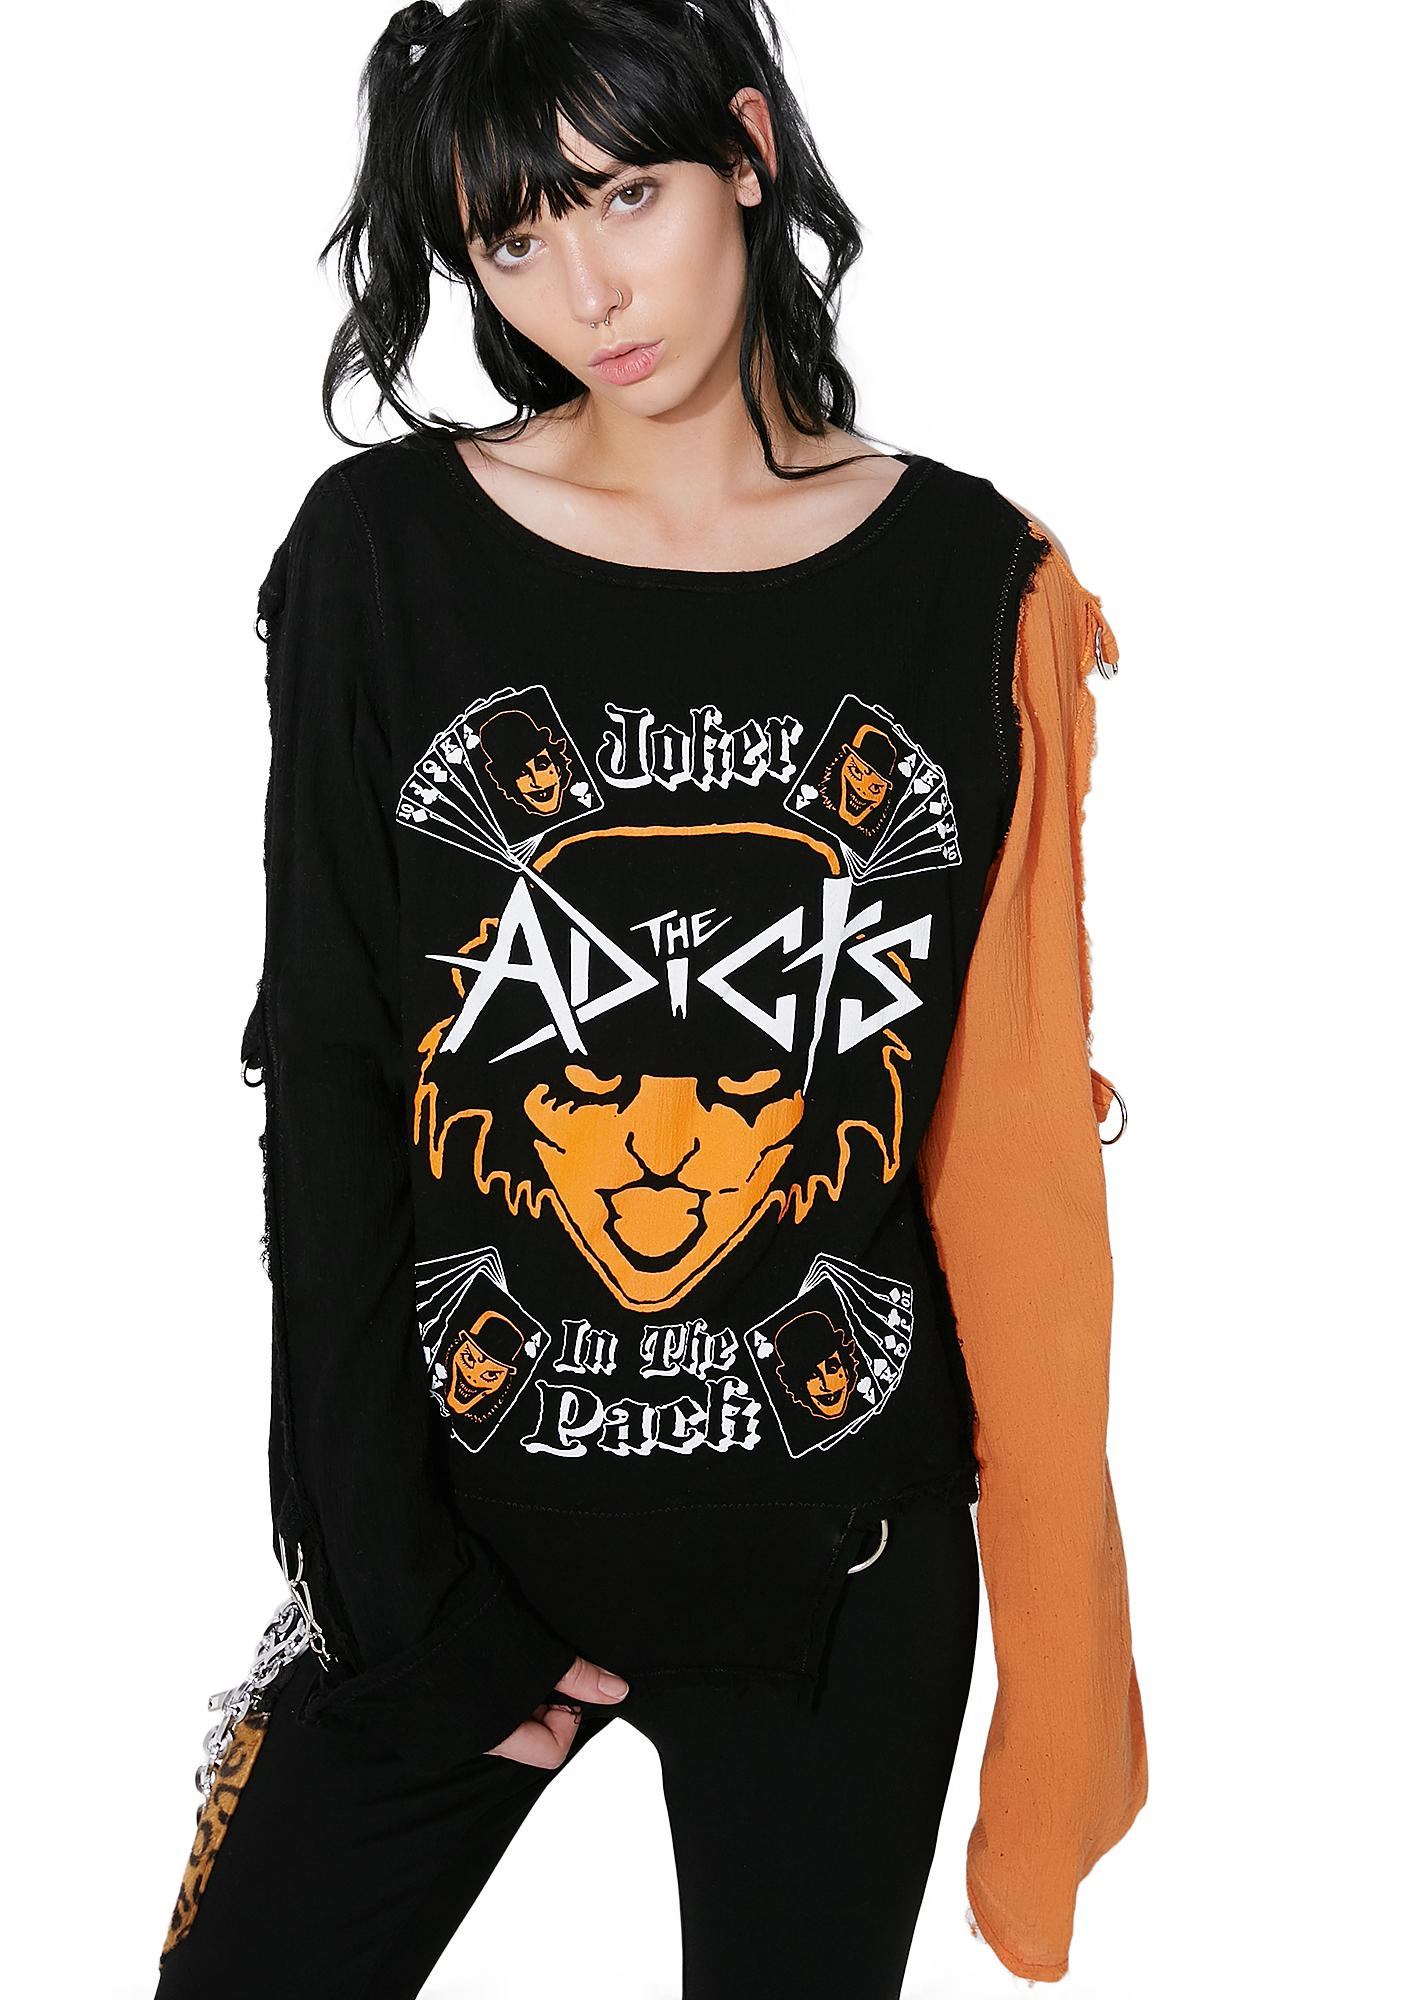 Seditionightmares The Adicts Joker Shirt